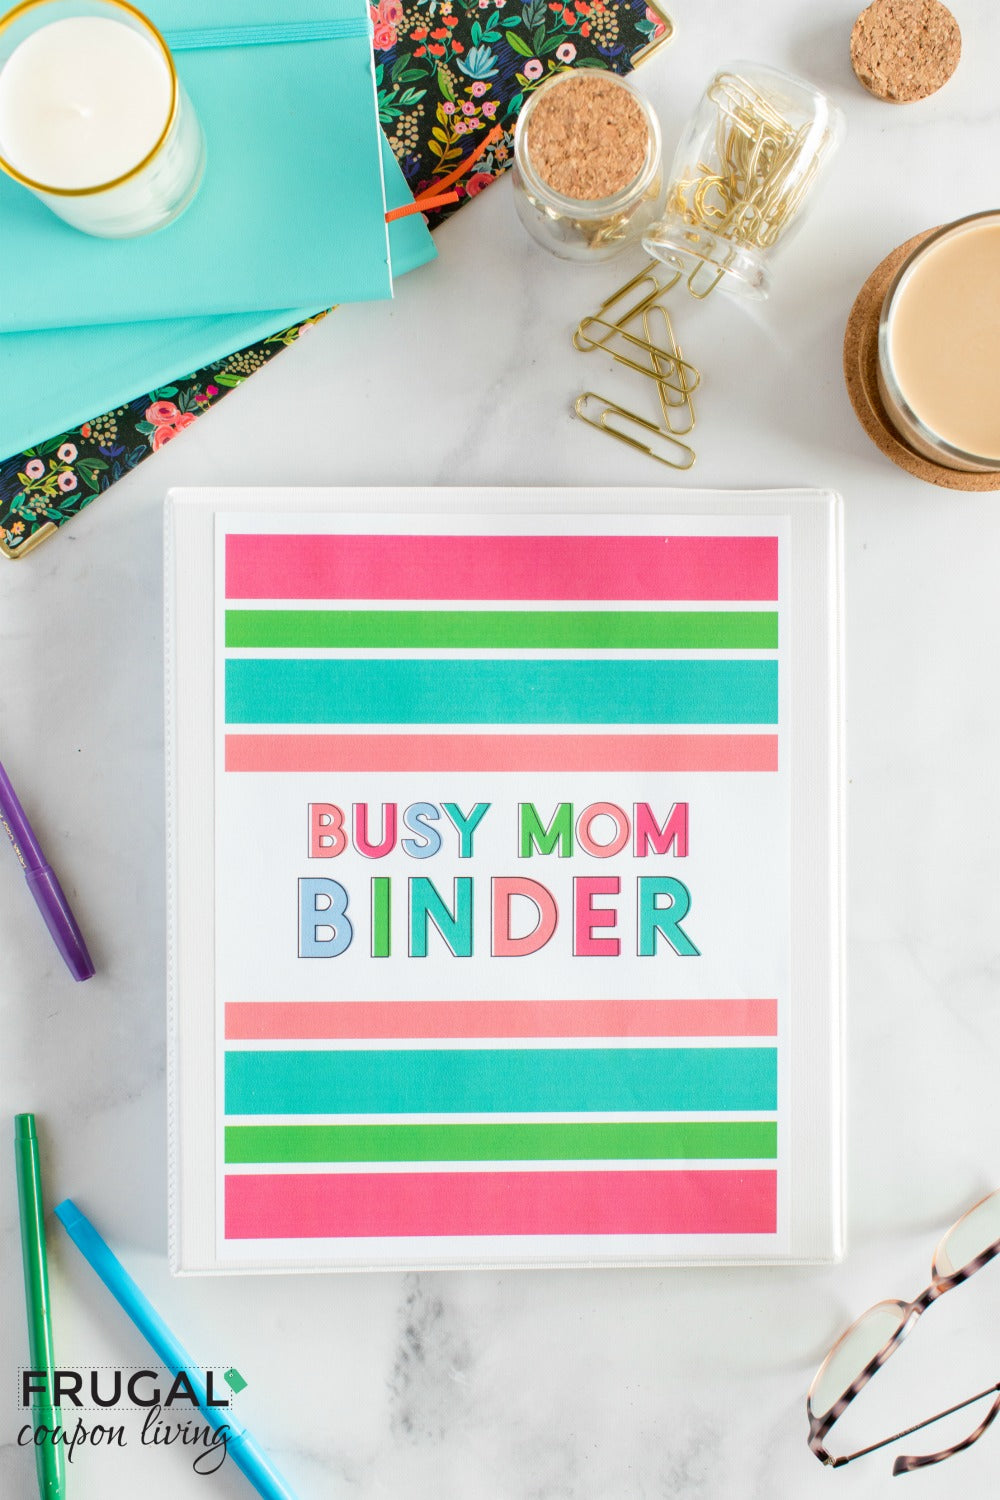 One Time Exclusive! The Busy Mom Binder